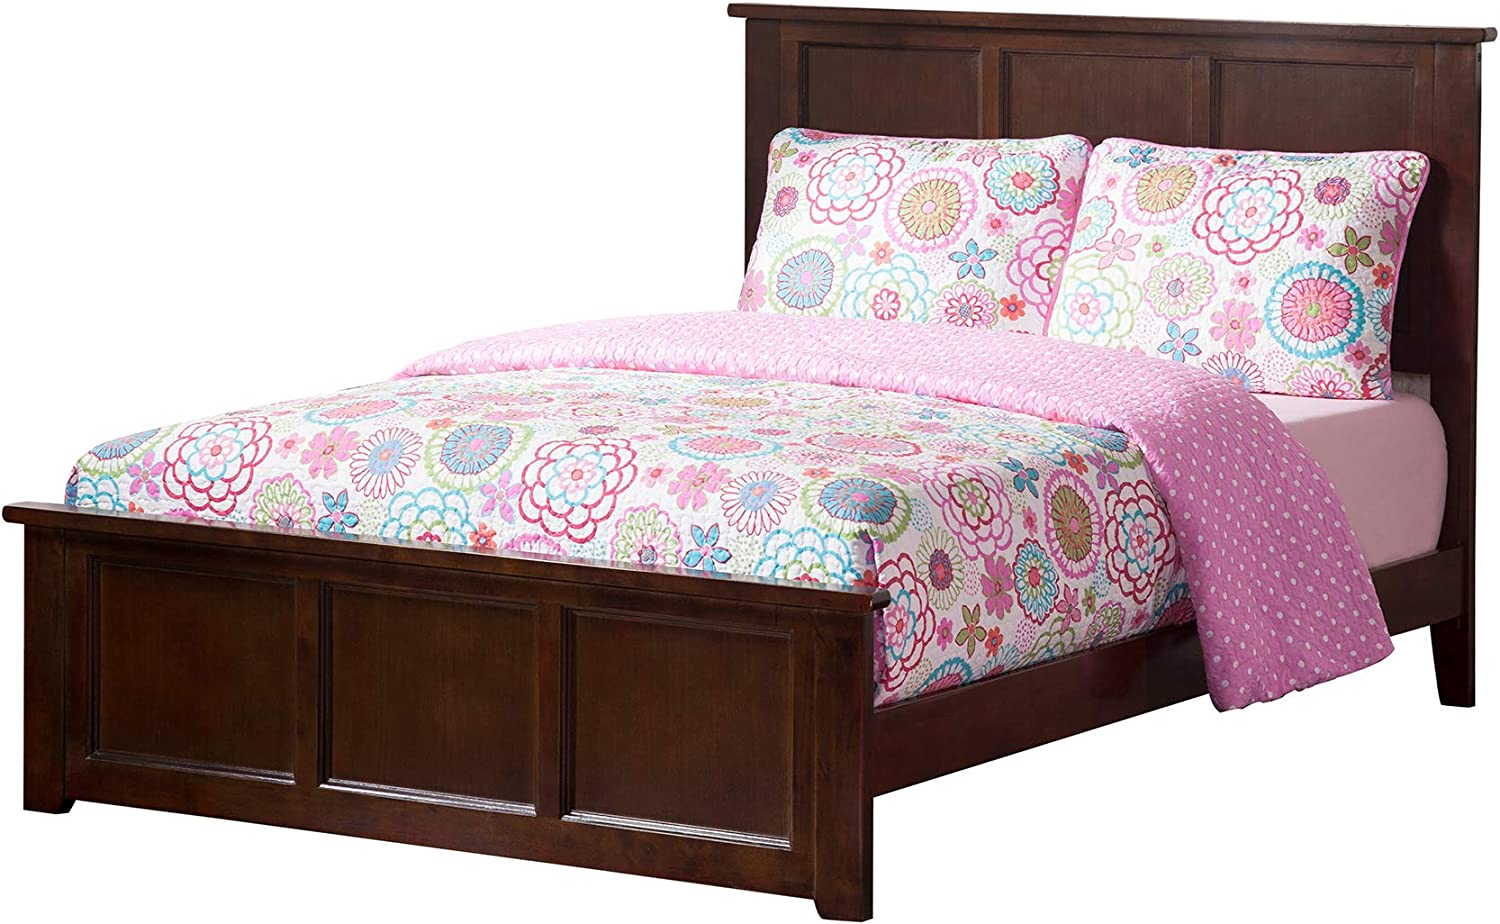 Atlantic Furniture Madison Traditional Bed with Matching Foot Board, Full, Walnut